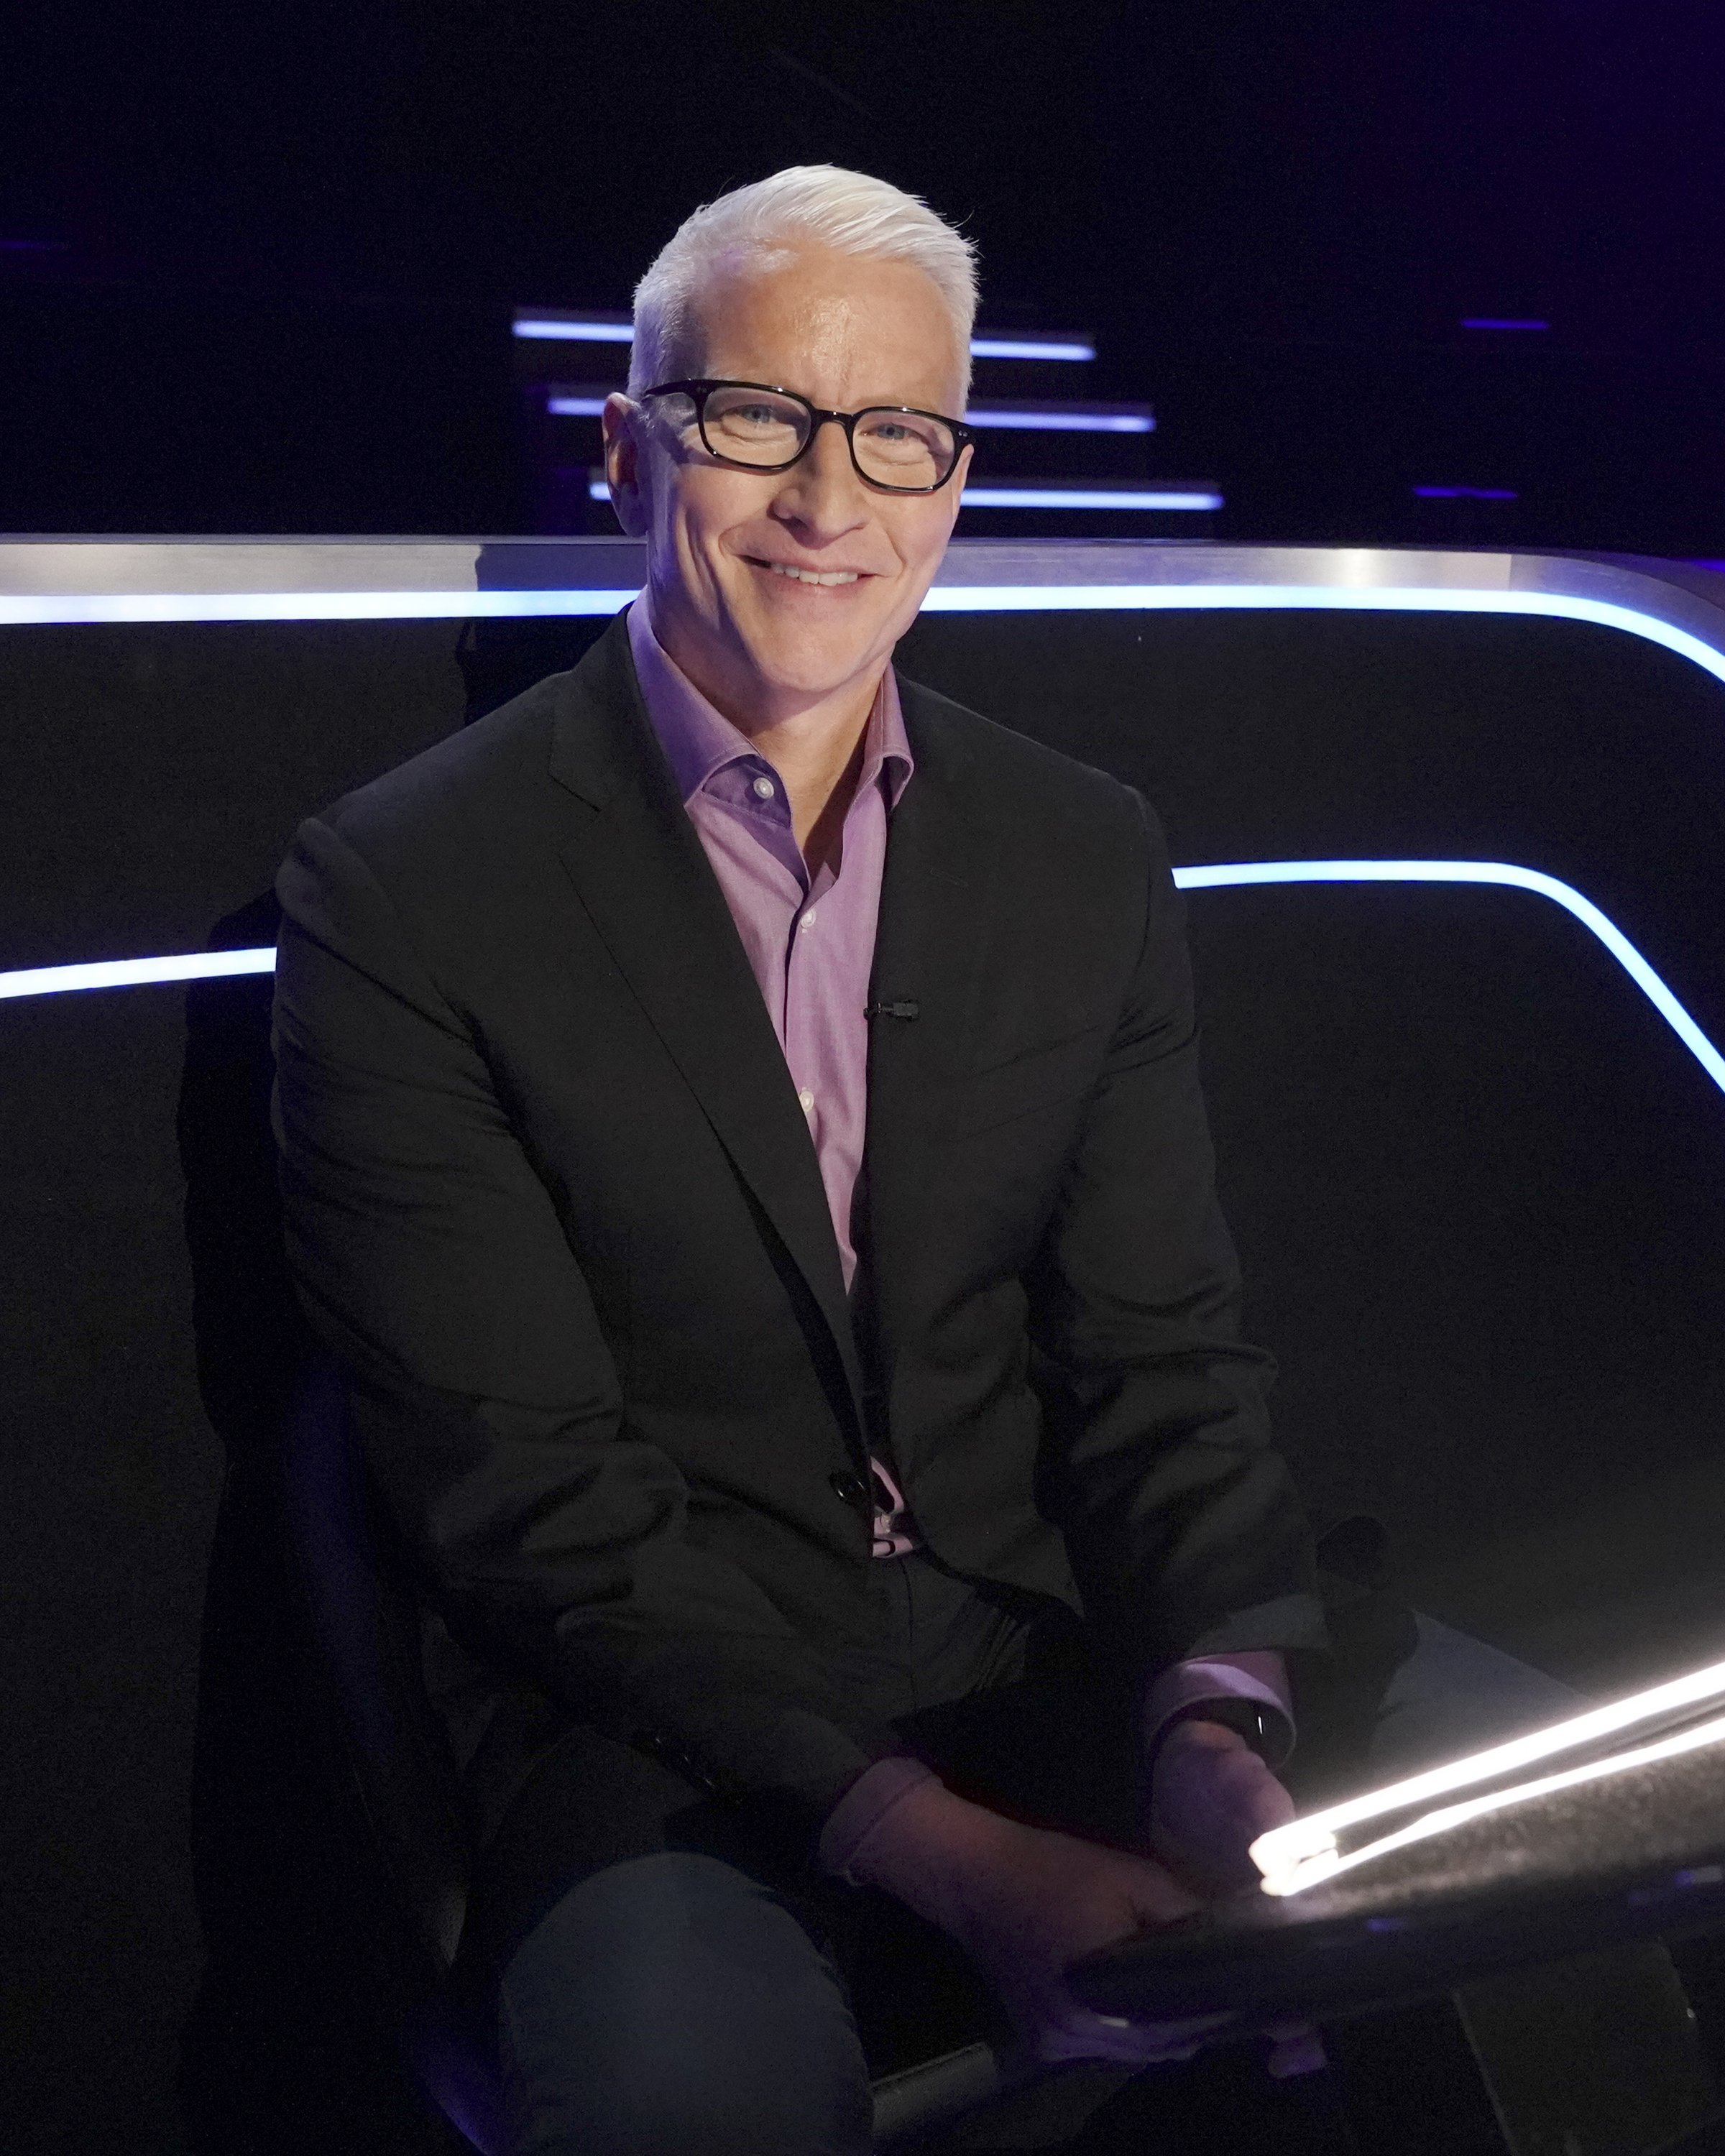 """Anderson Cooper on """"Who Wants To Be A Millionaire"""" on March 14, 2020. 